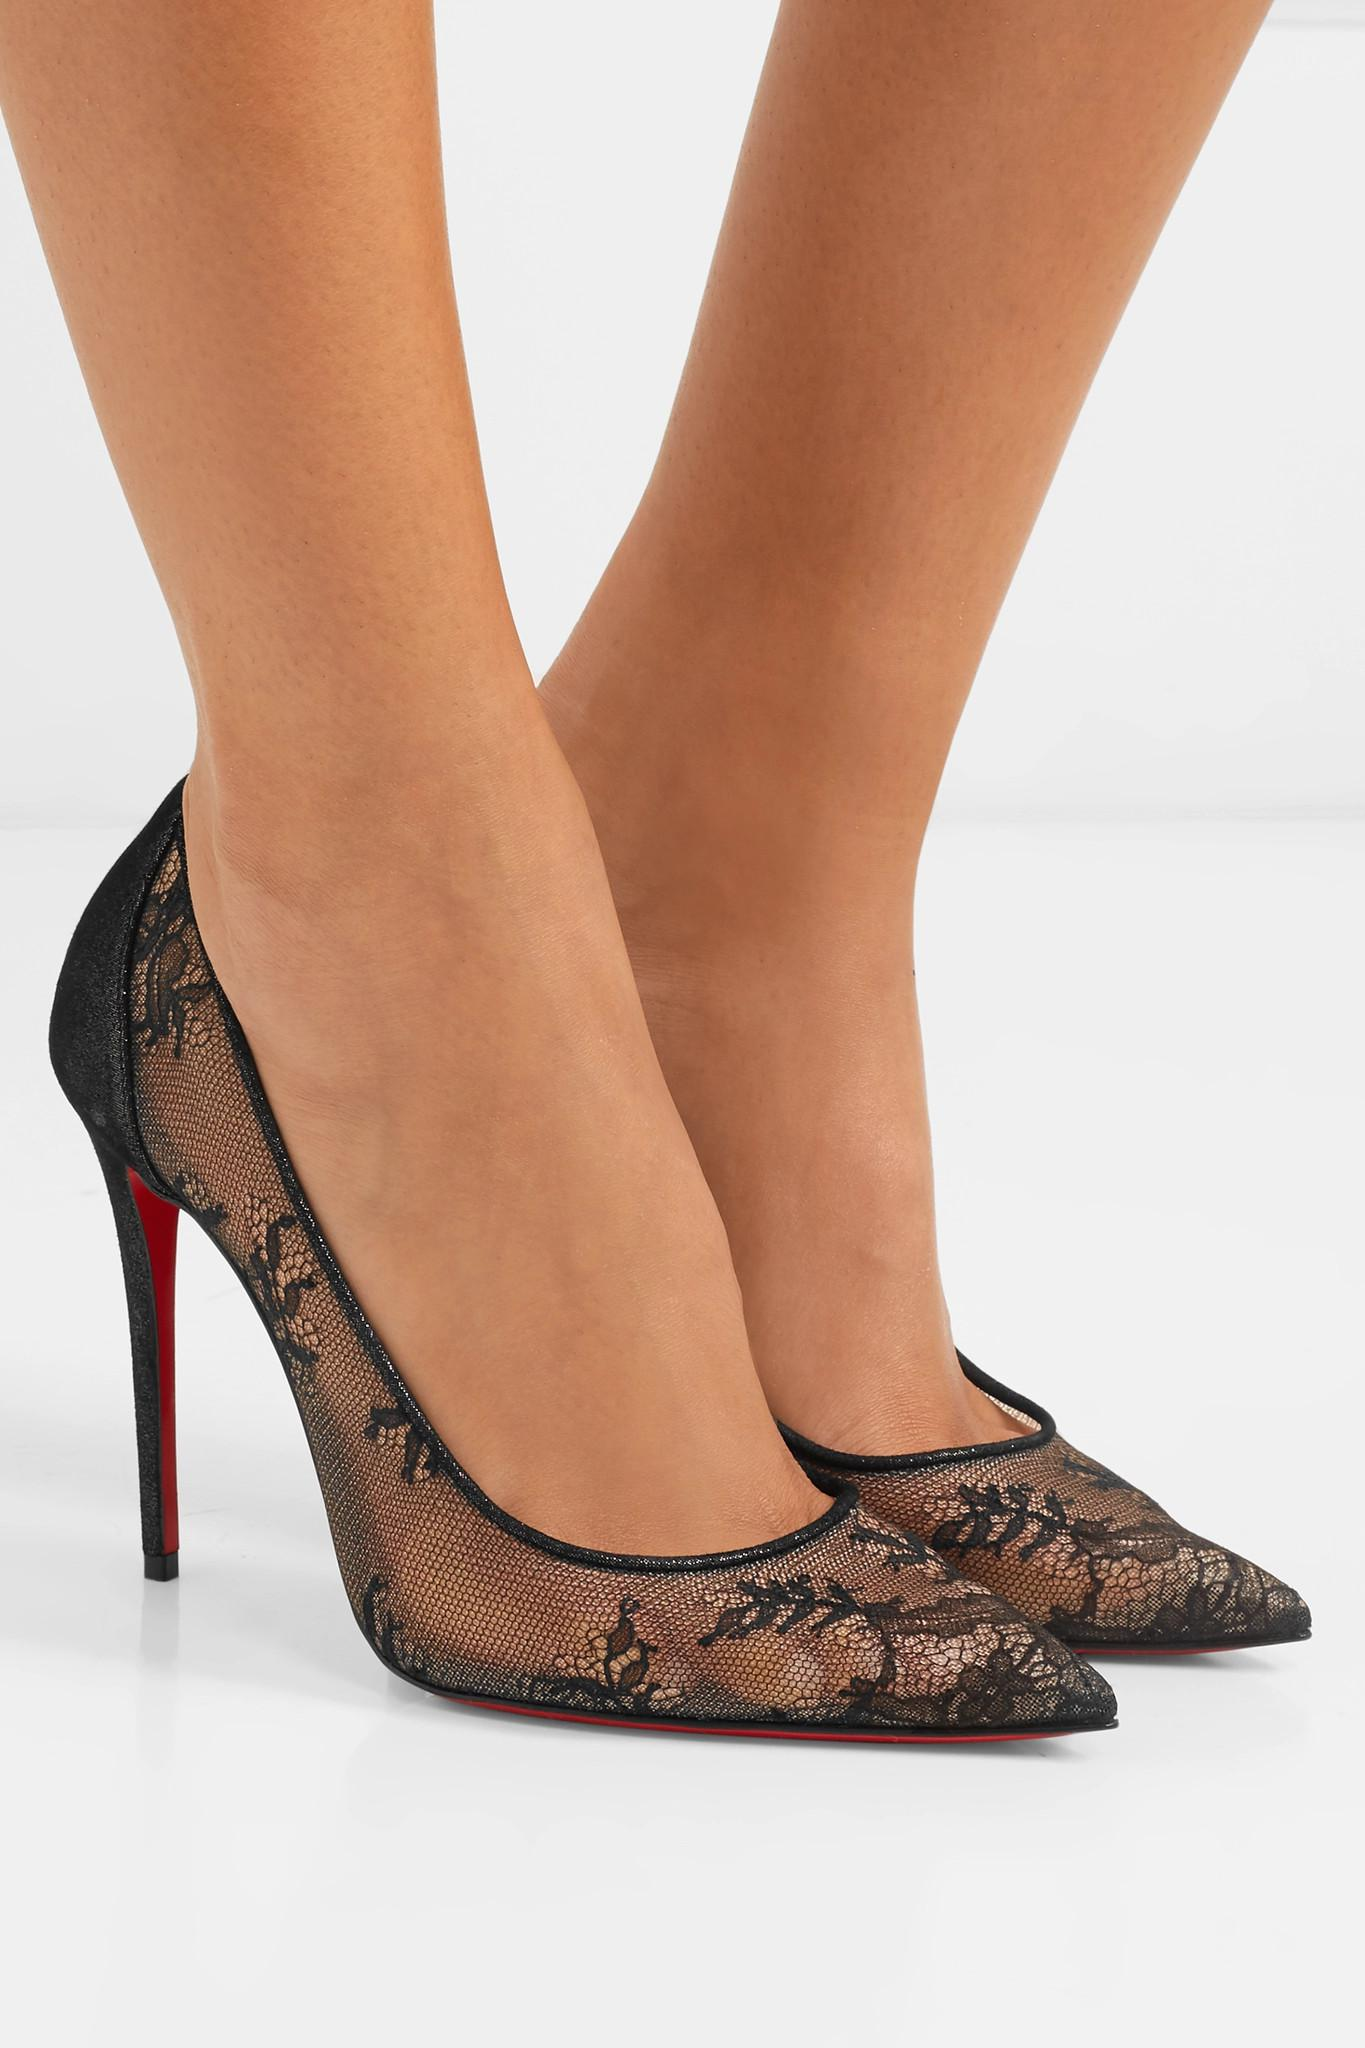 849a68d9aecd Christian Louboutin - Black 554 100 Lace And Lamé Pumps - Lyst. View  fullscreen